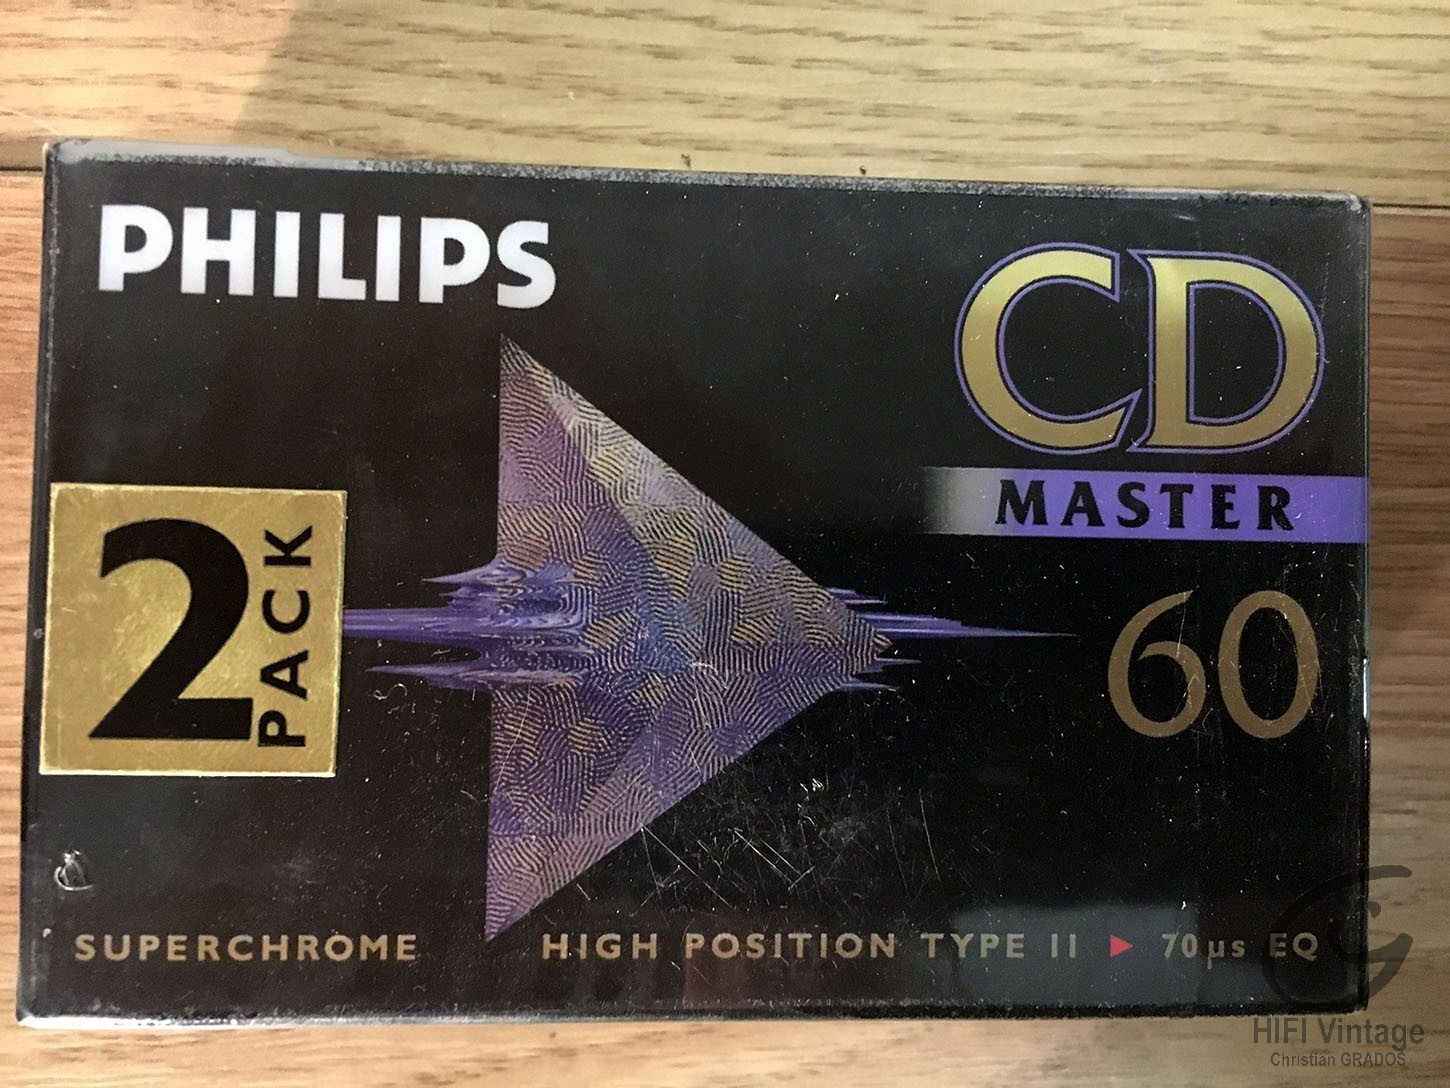 PHILIPS CD Master 60 Hifi vintage réparations